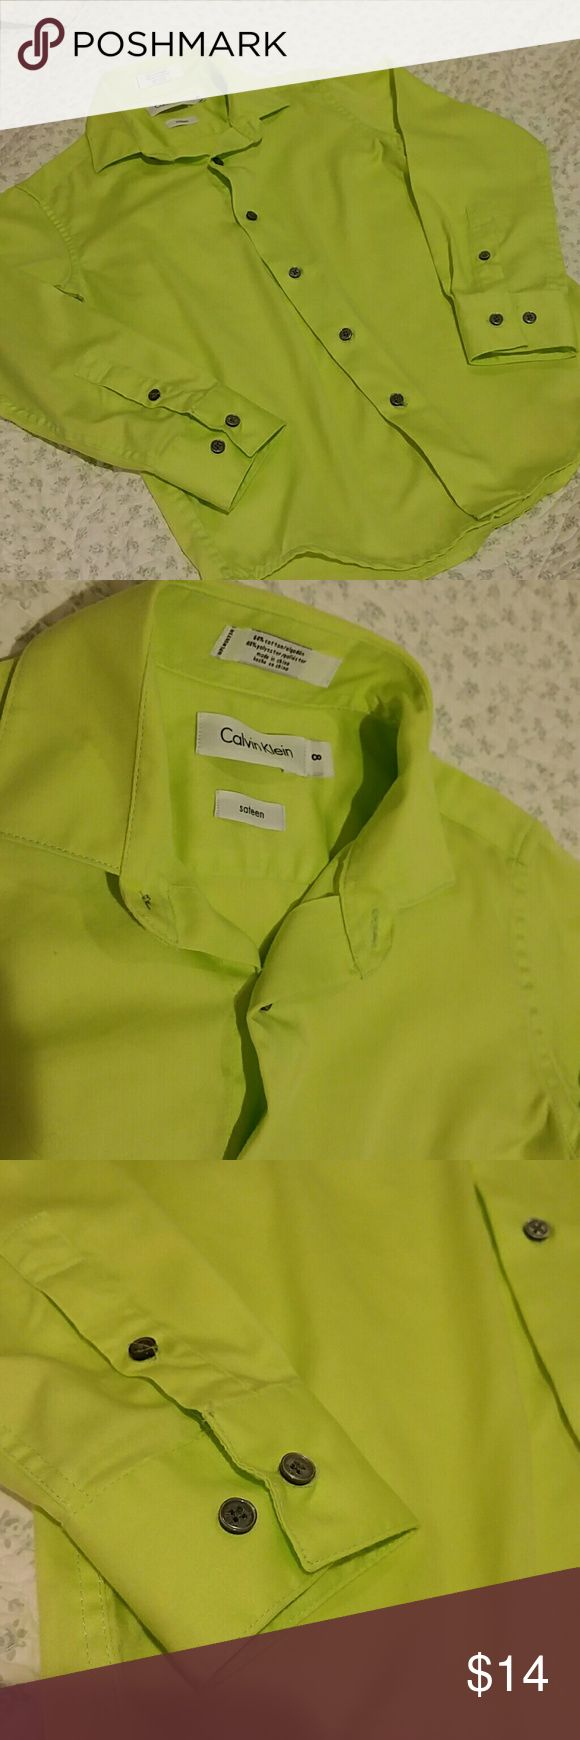 CALVIN KLEIN NEON GREEN DRESS SHIRT SZ.8 If your little guy likes to stand out in a crowd and this Calvin Klein button-up dress shirt is him it's in a neon green lime color in a sentence in Spanish buttons at the sleeve and buttons down the center previously owned but in excellent condition Calvin Klein Shirts & Tops Button Down Shirts